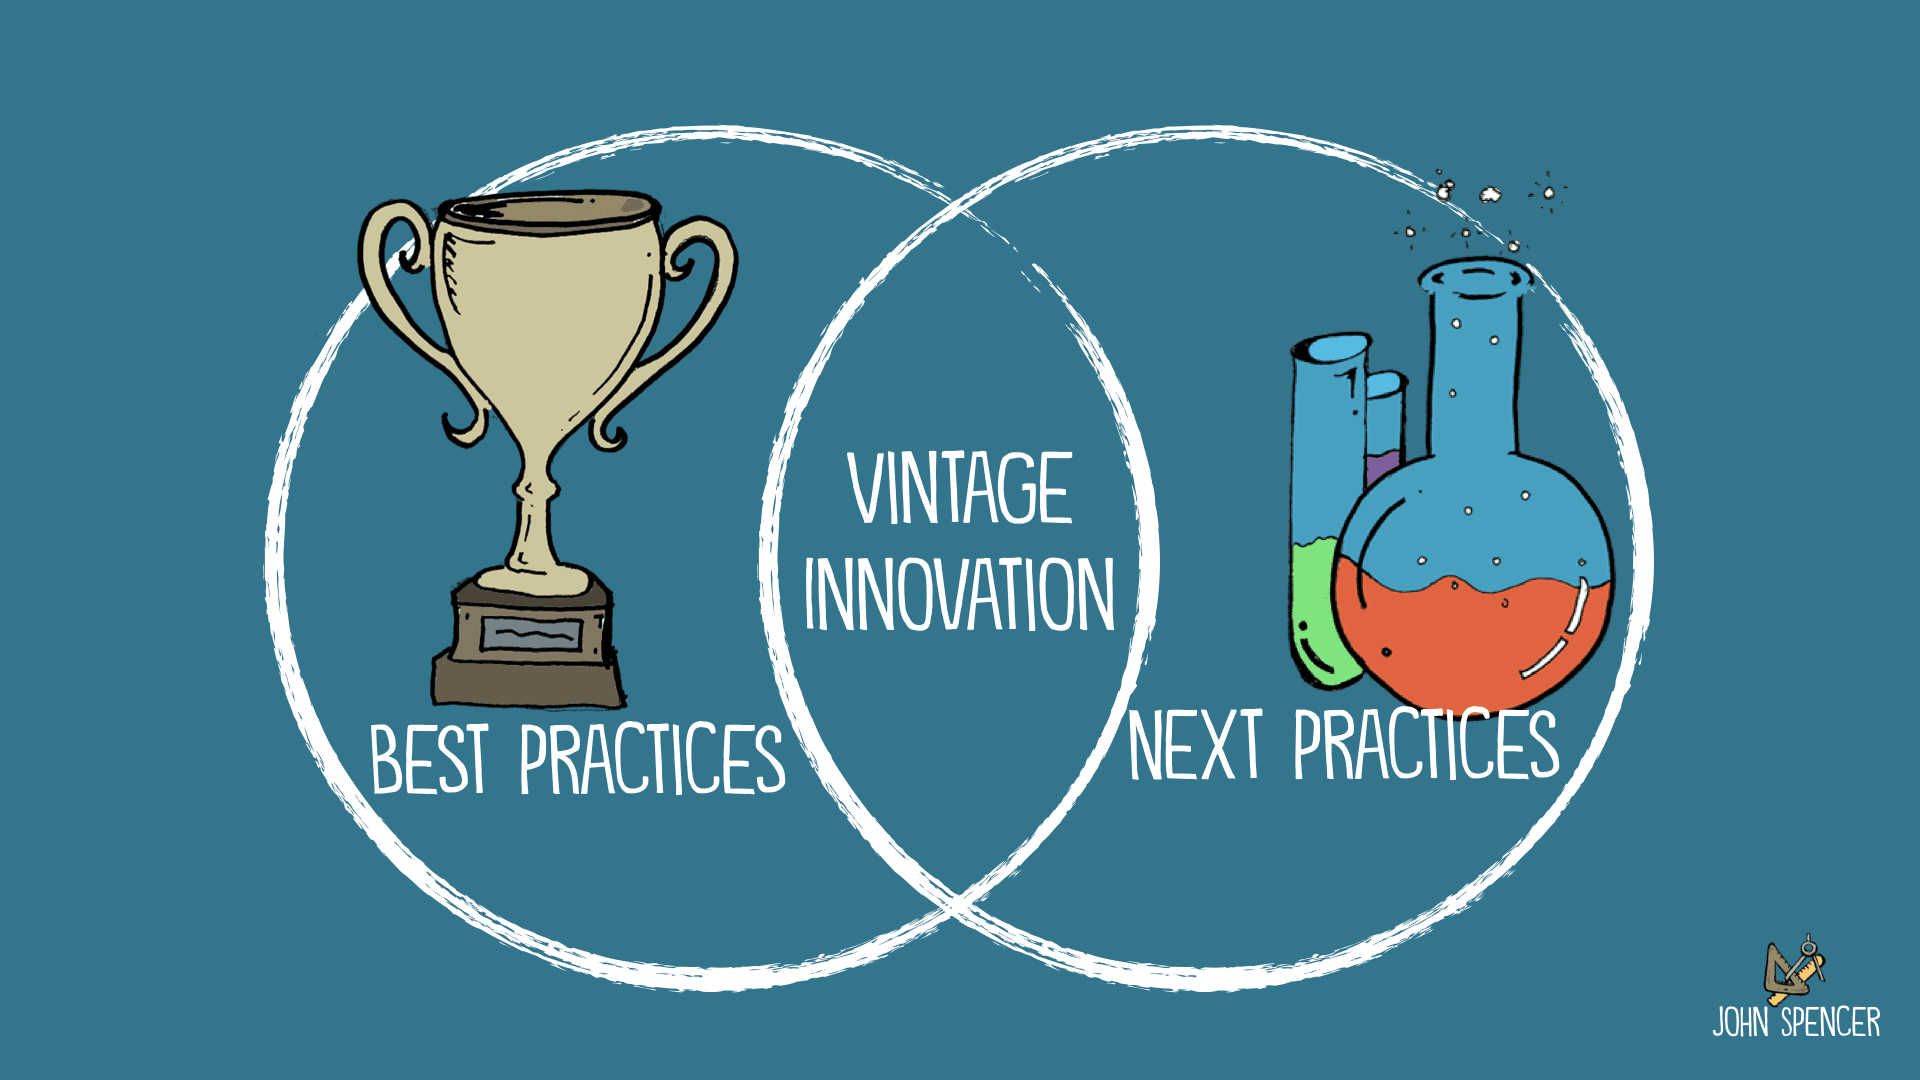 Best practices and next practices